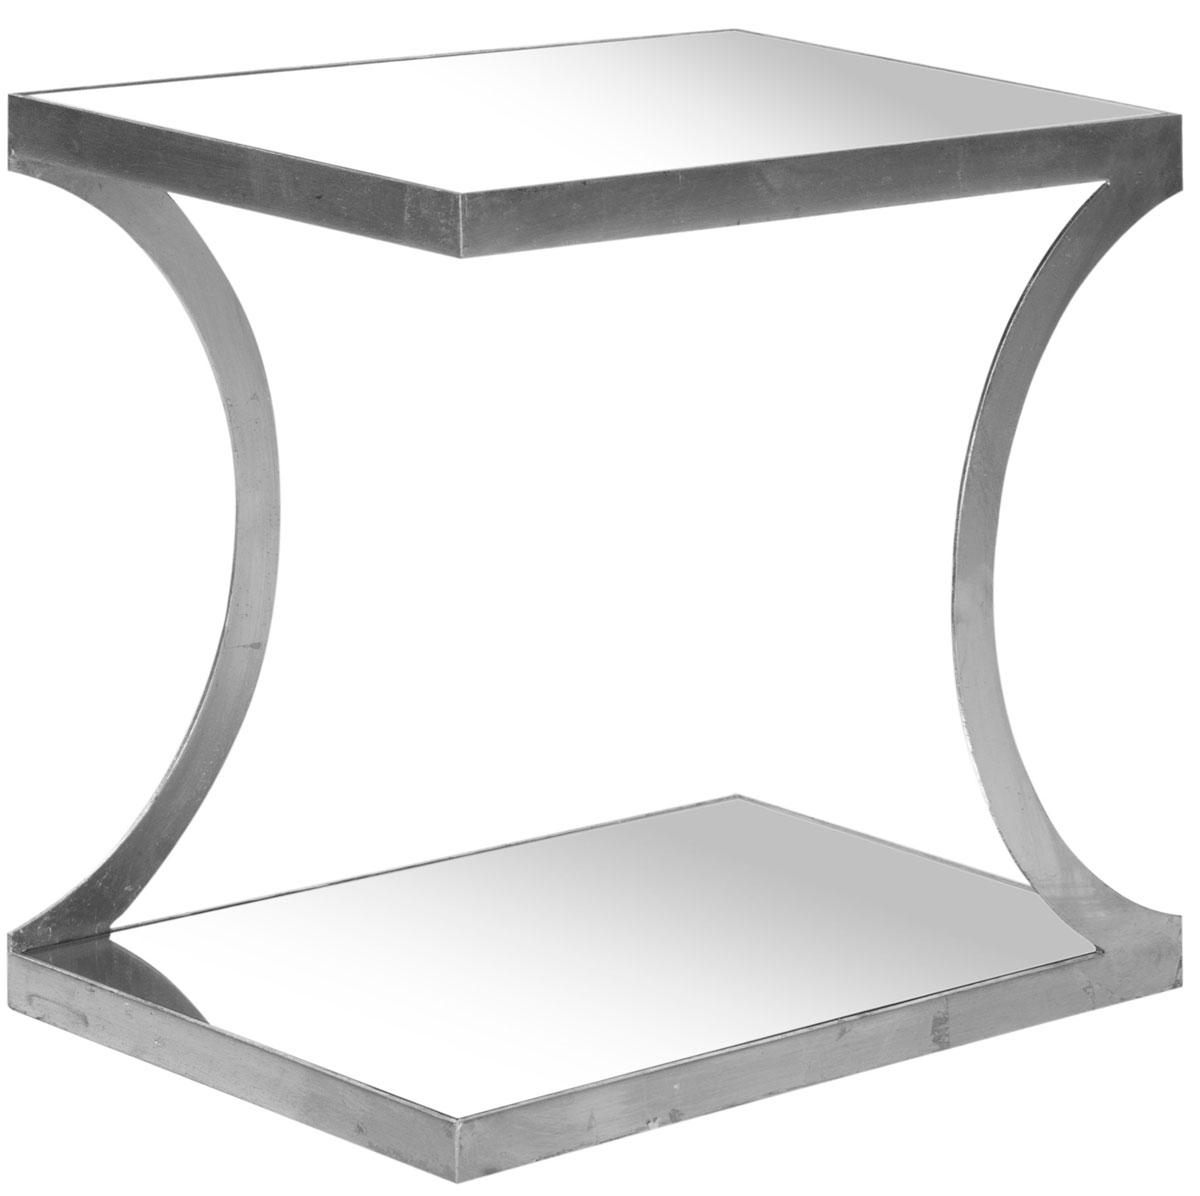 accent tables furniture safavieh side silver leaf table product details round nest butterfly lighting log modern and couches under rubber carpet edging trim purple placemats